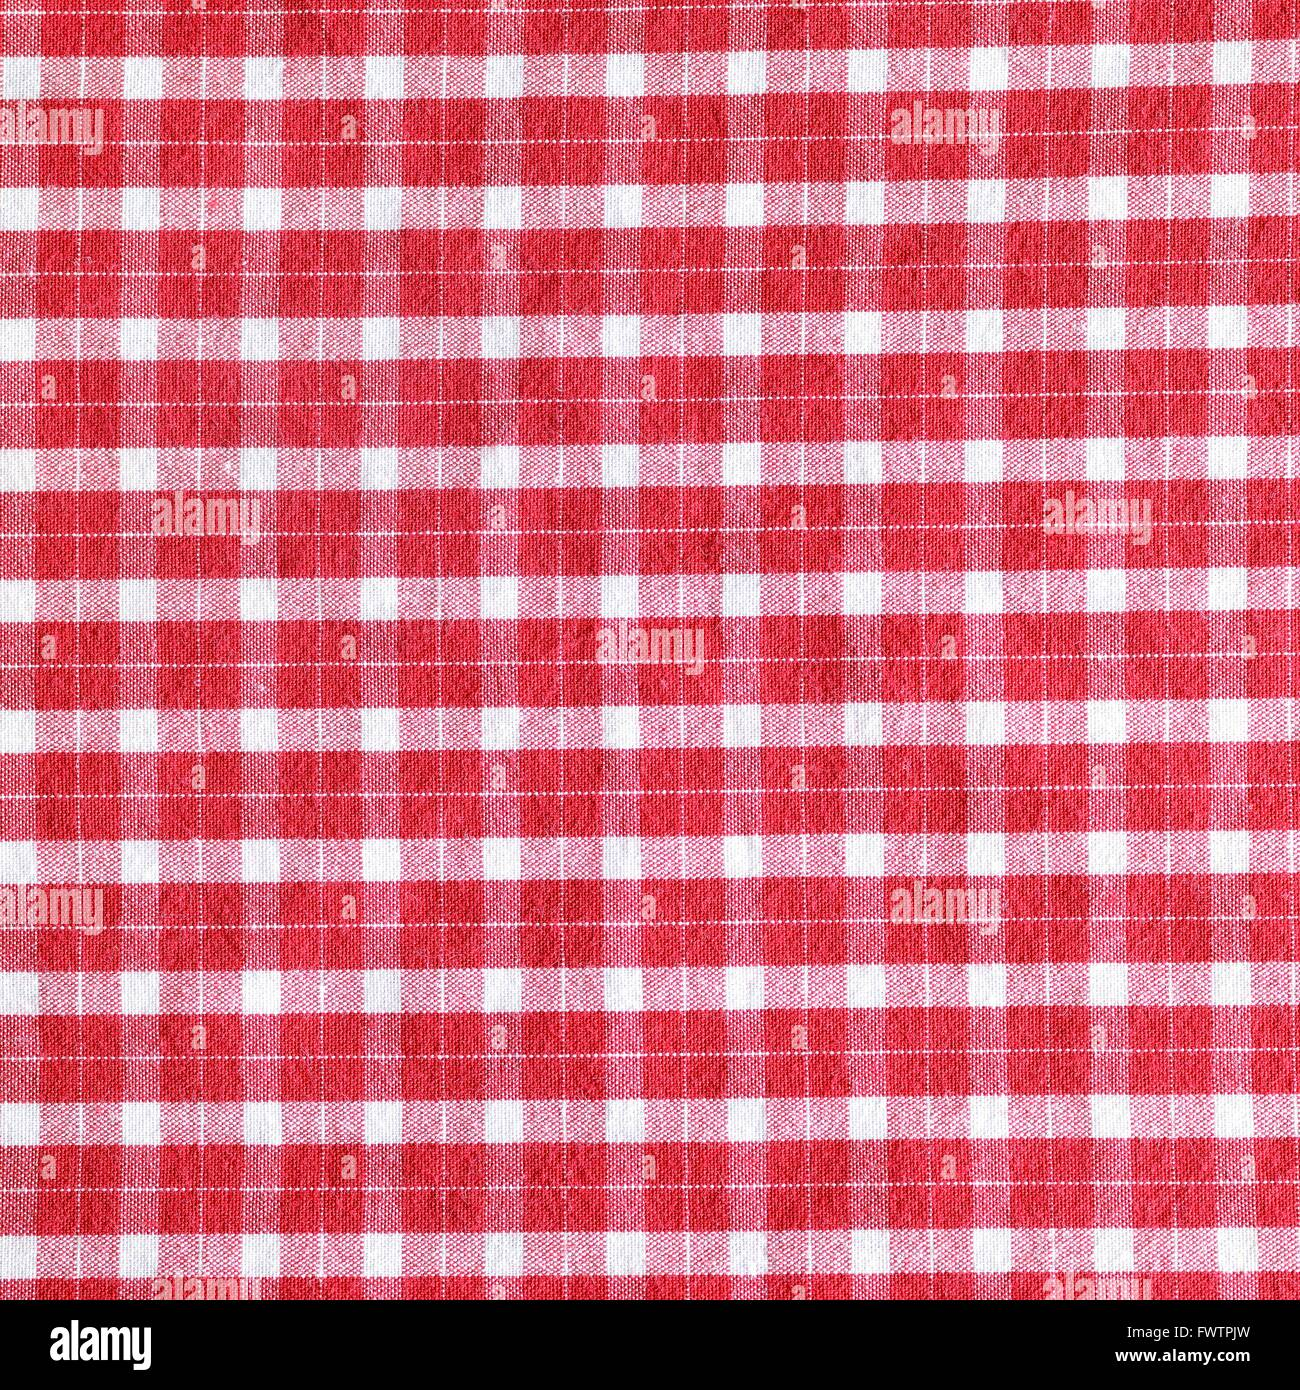 Red and white gingham tablecloth pattern - Stock Image